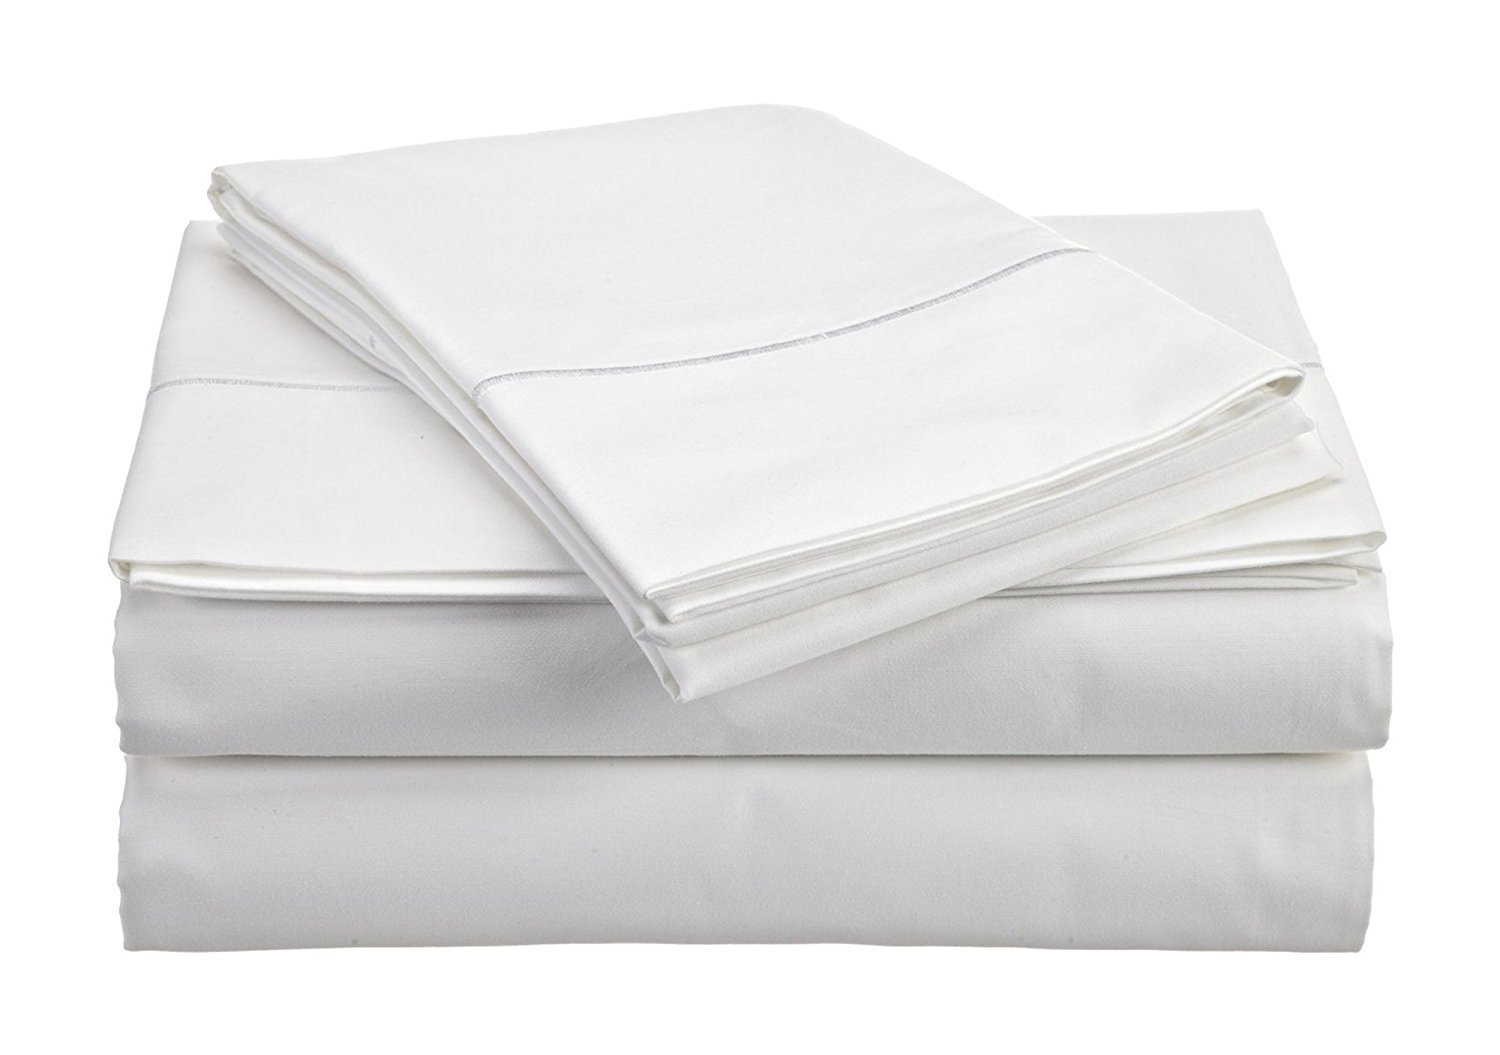 Sound Sleeping 4-Piece Brushed Microfiber Bed Sheets Queen Size - Wrinkle - Fade - Stain Resistant - Hypoallergenic - White